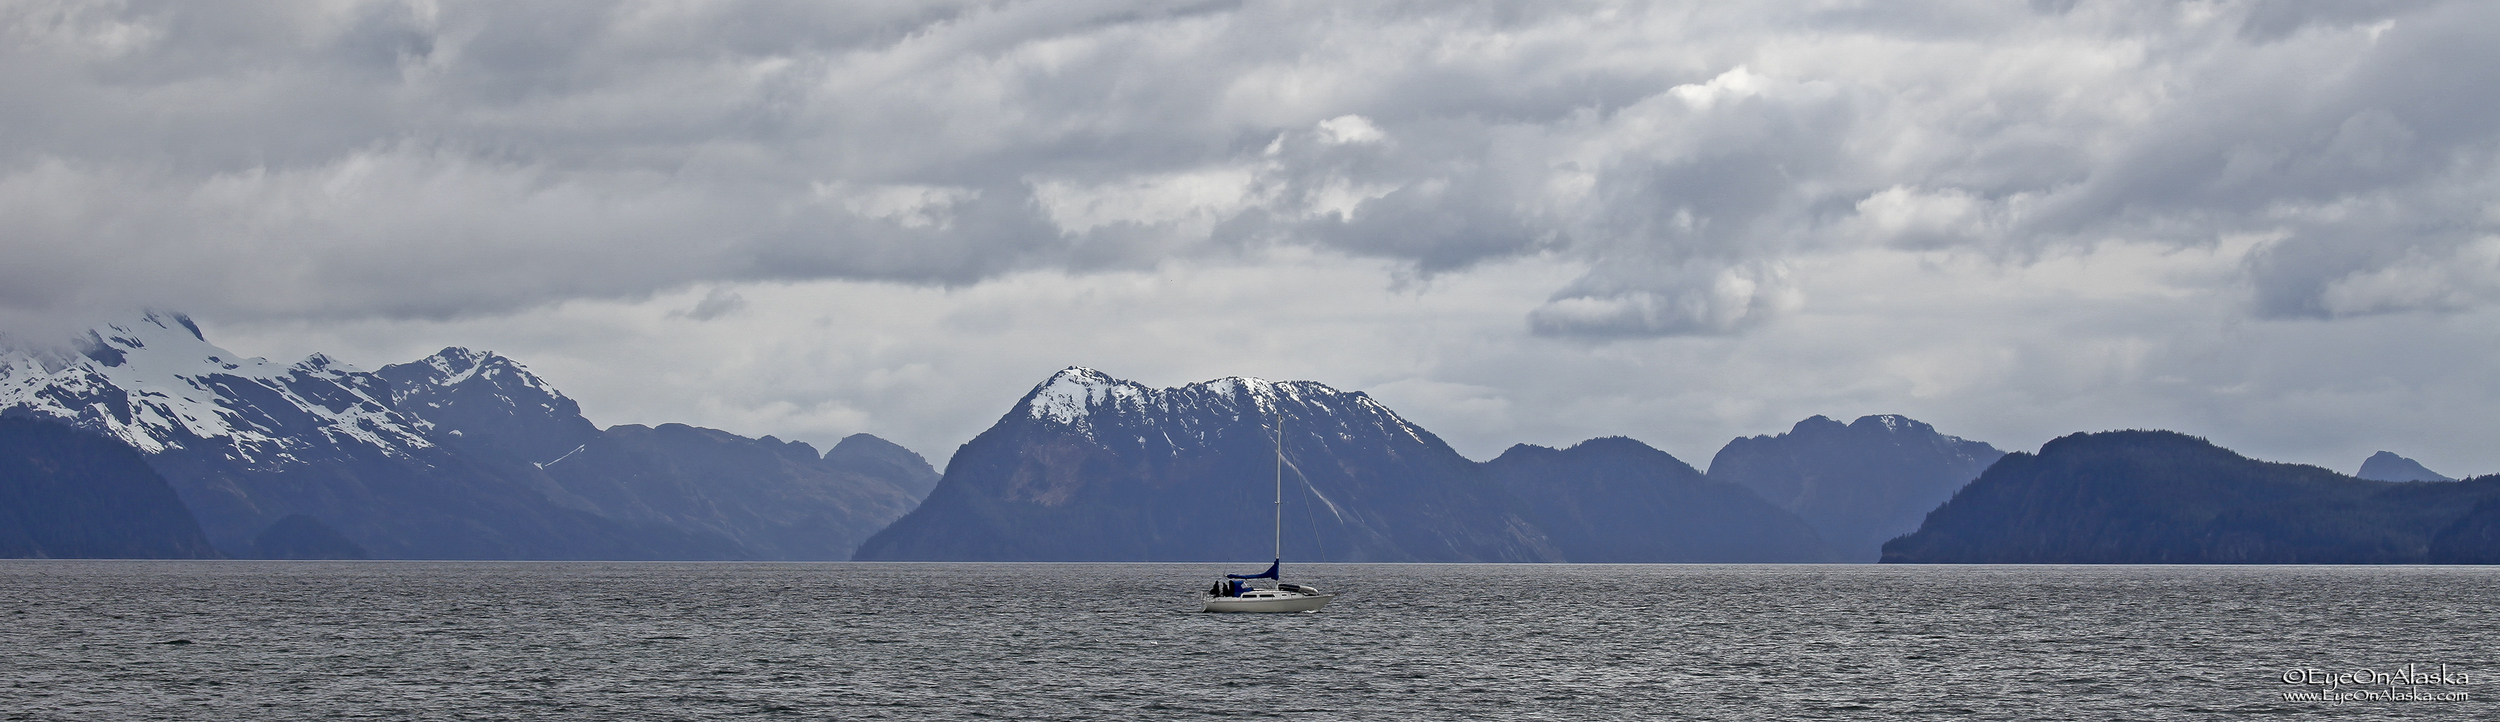 Time to get those sails up! And time for us to head to Ptarmigan Campground for Saturday night.